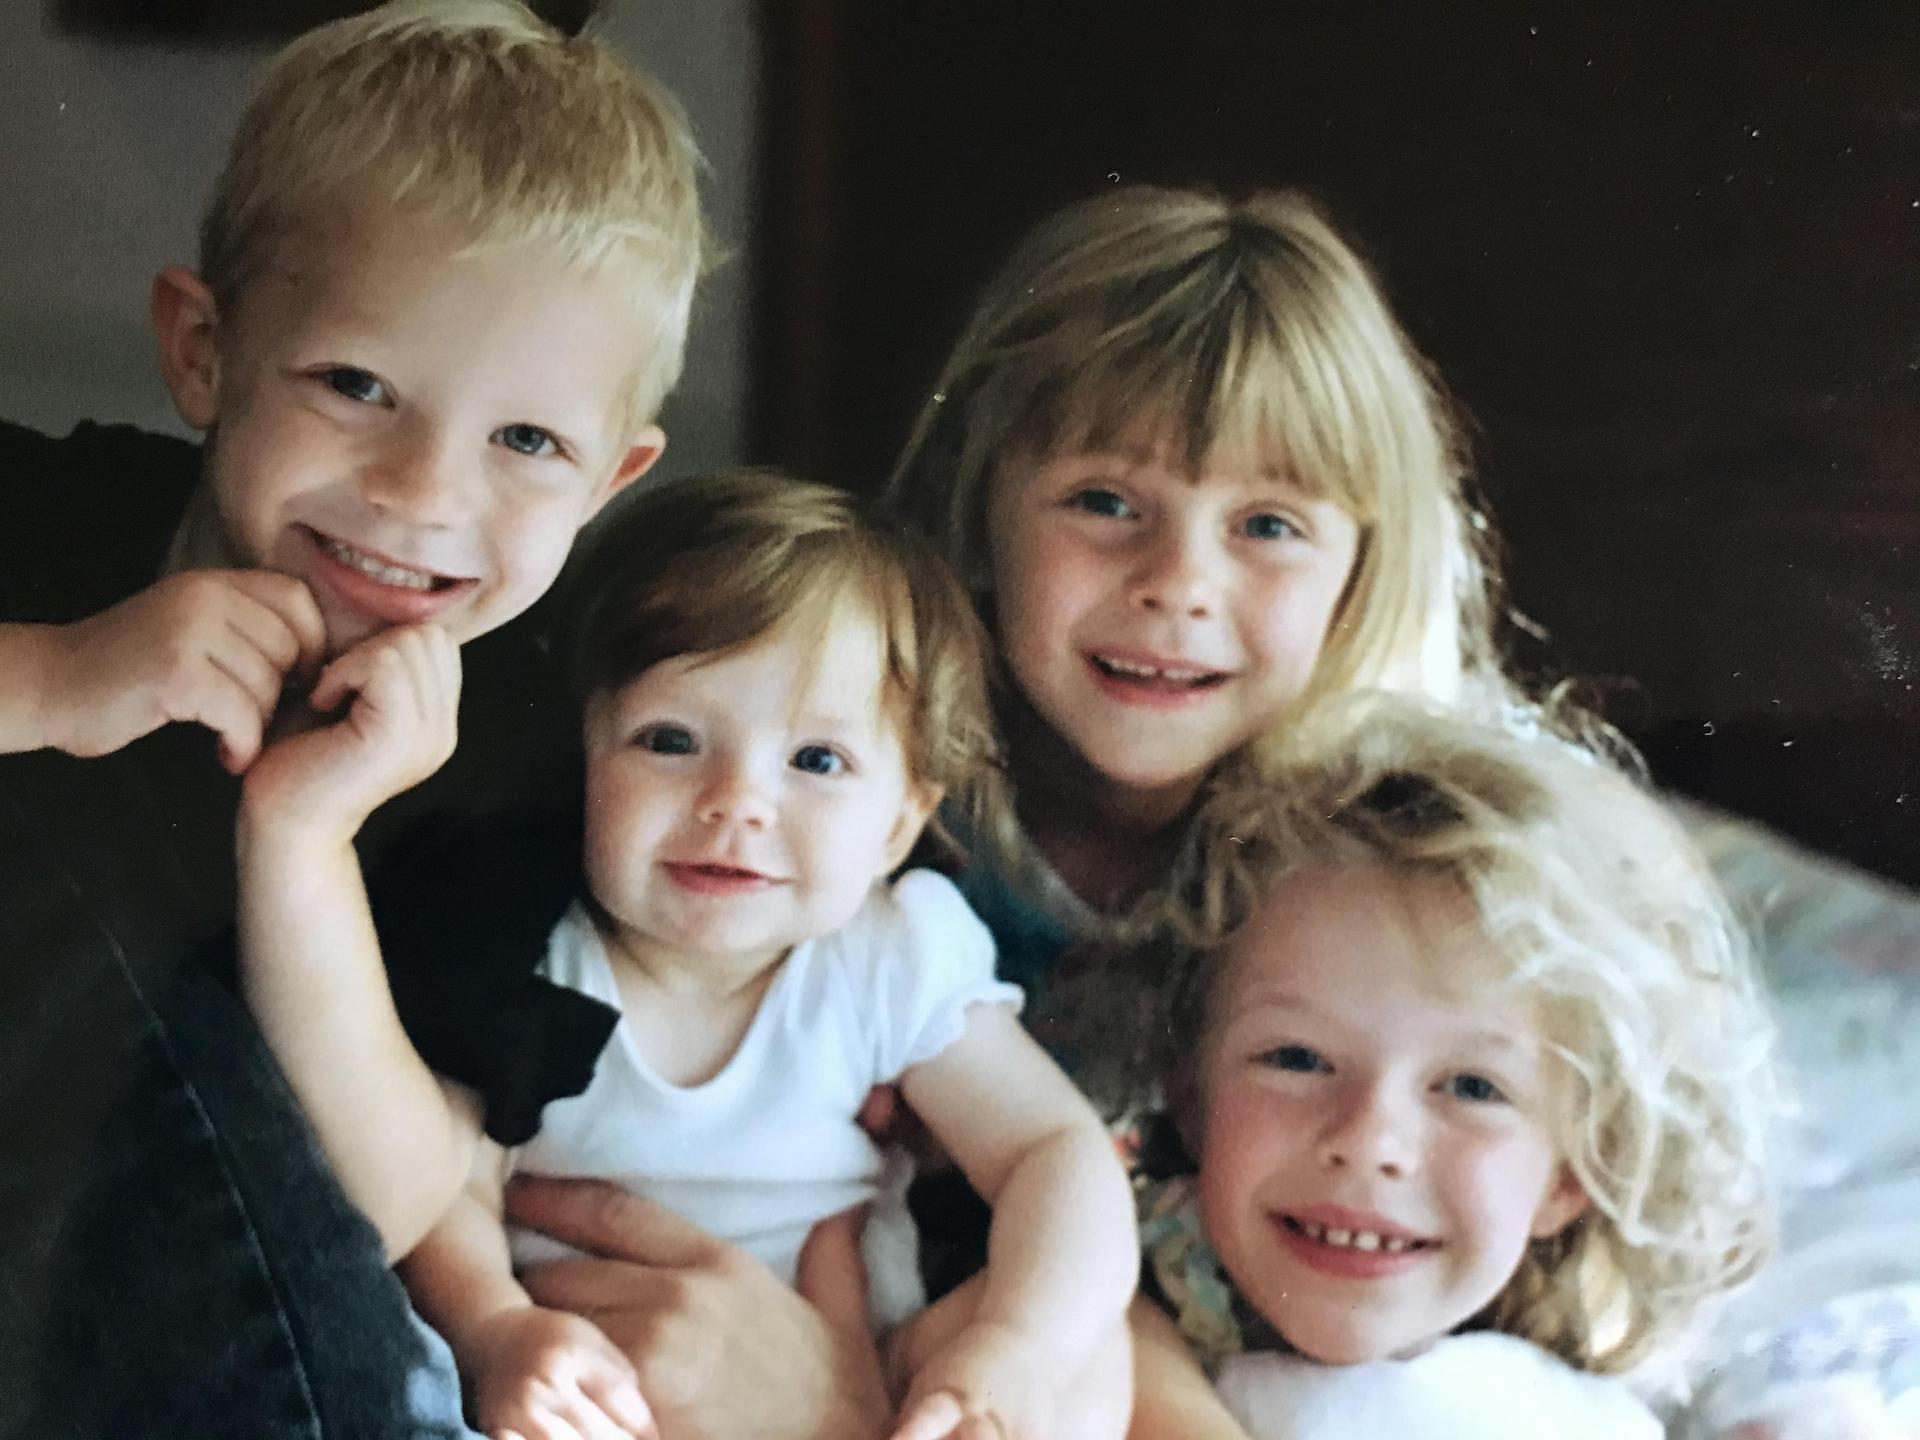 This is one of my favorite pictures of my kids when they were little.